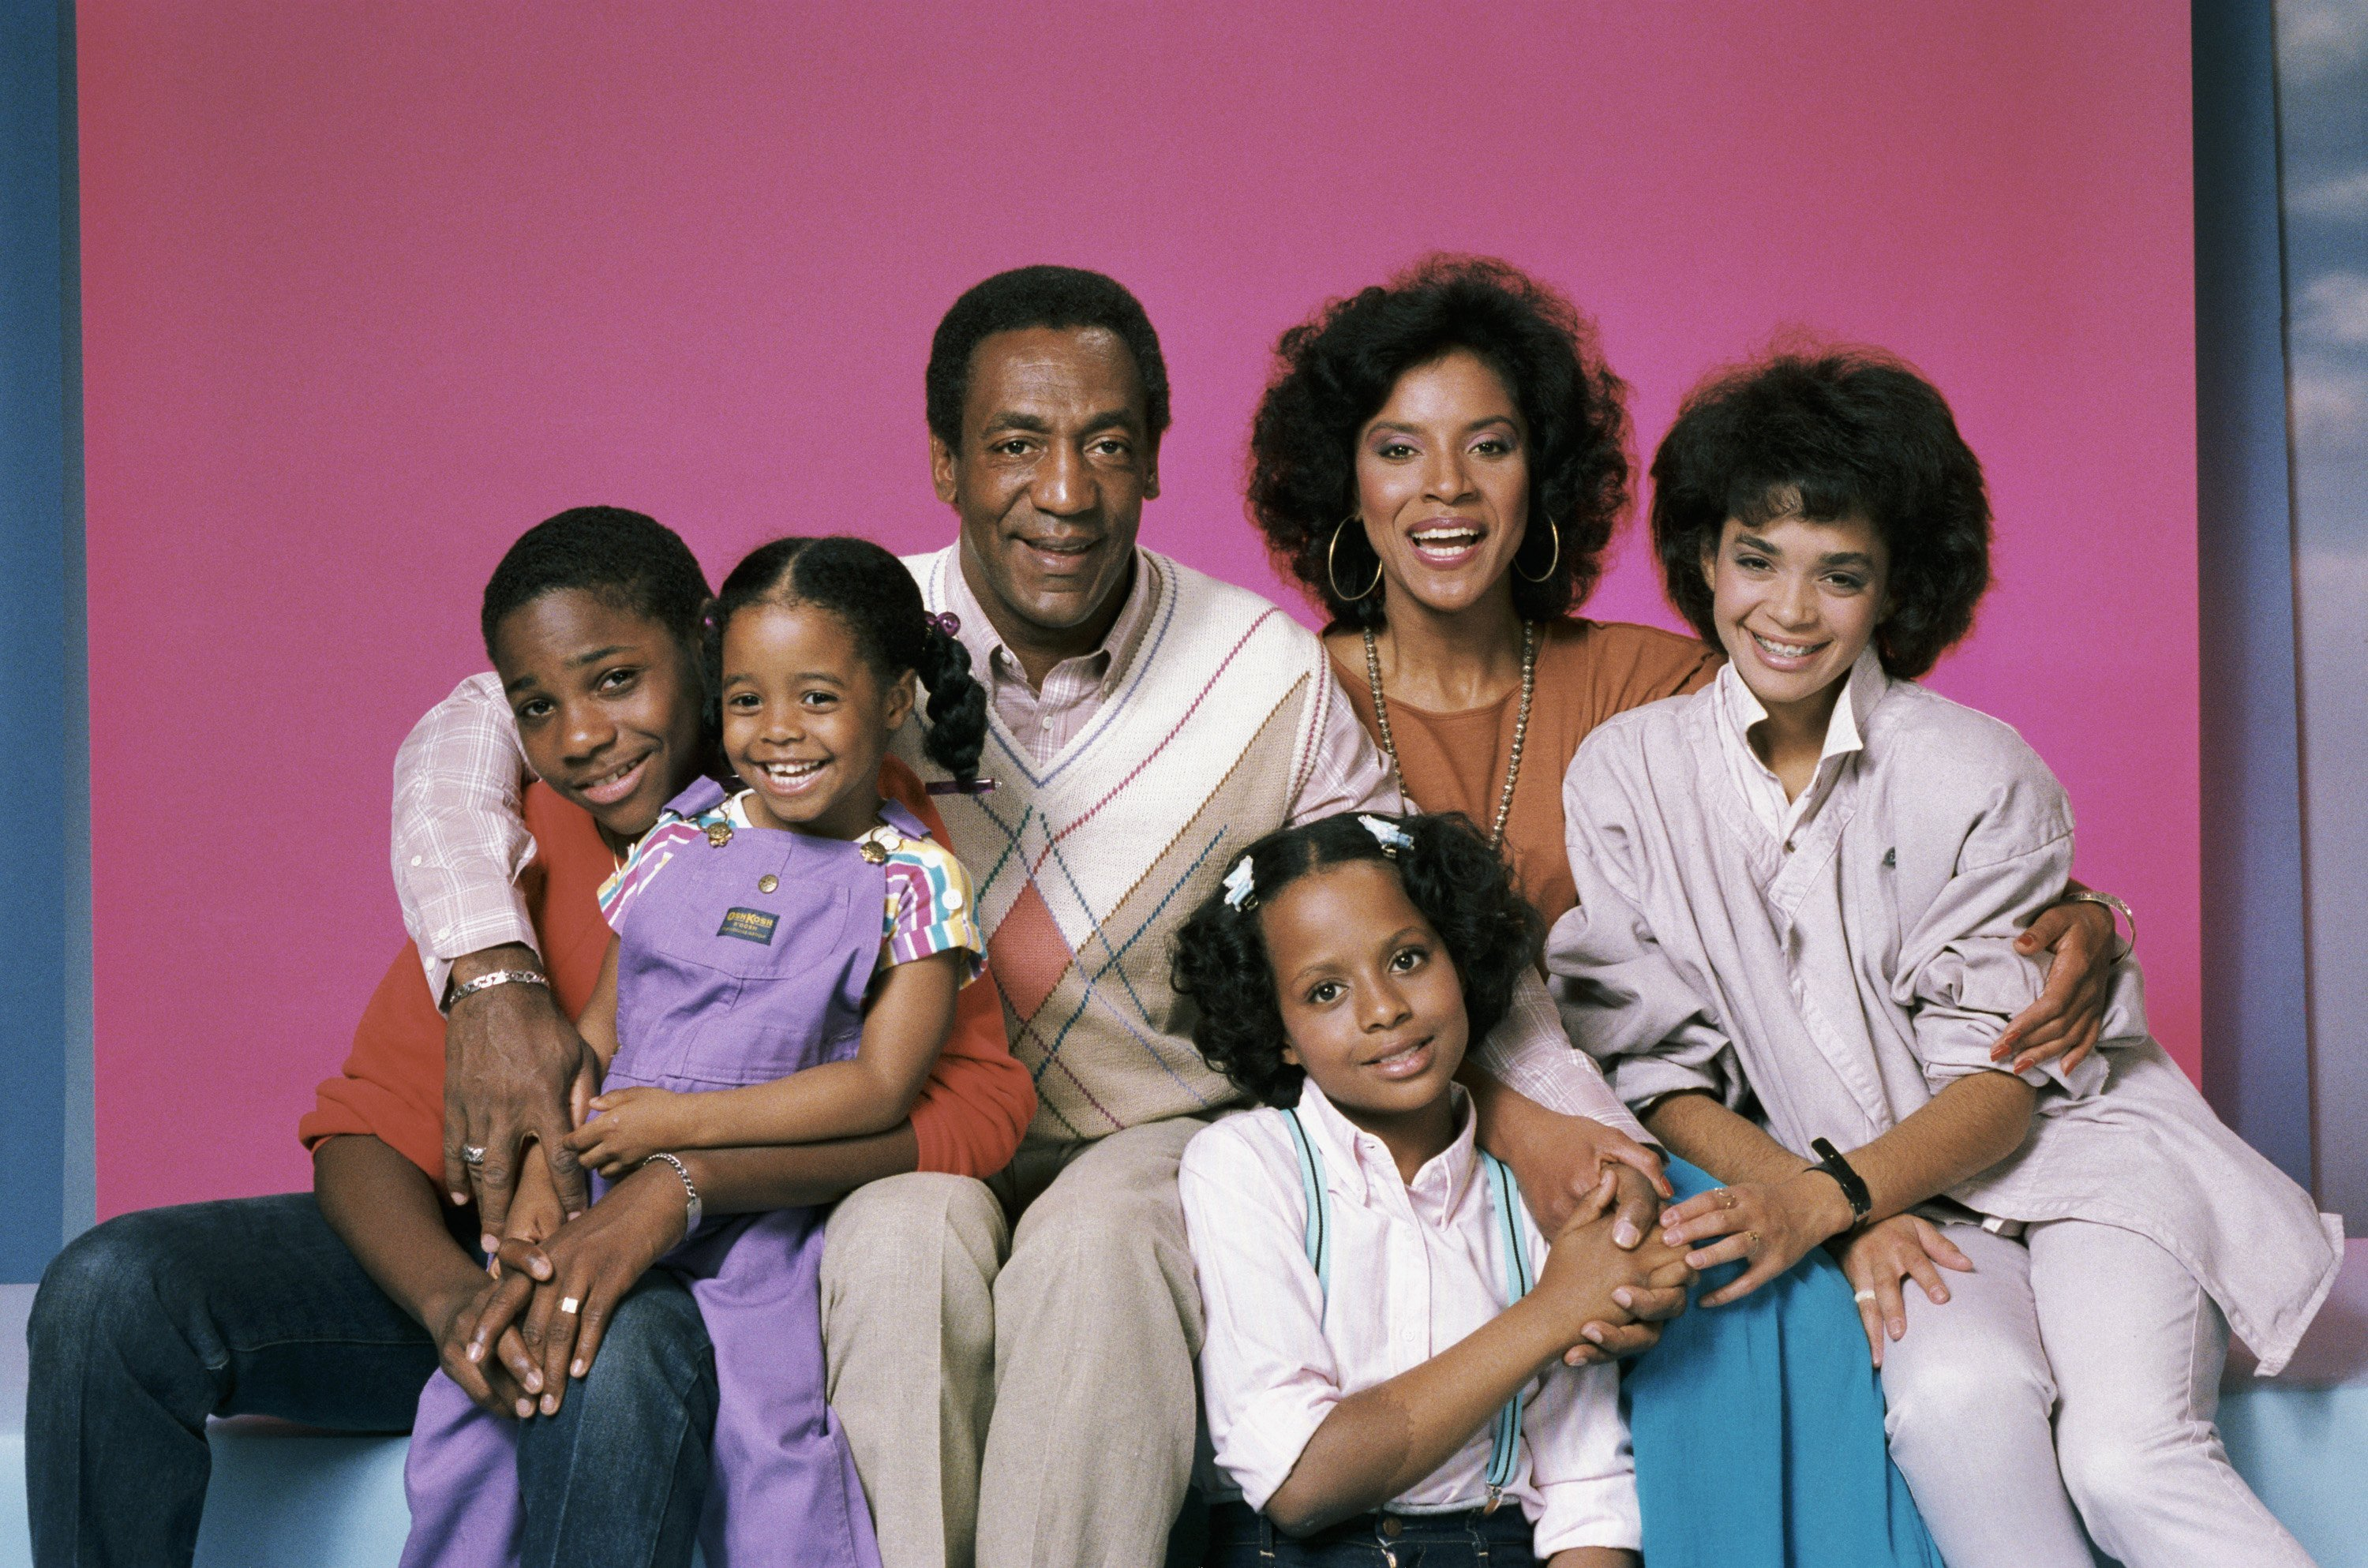 """The cast of """"The Cosby Show"""" in a promotional photoshoot for the show's first season in 1984 